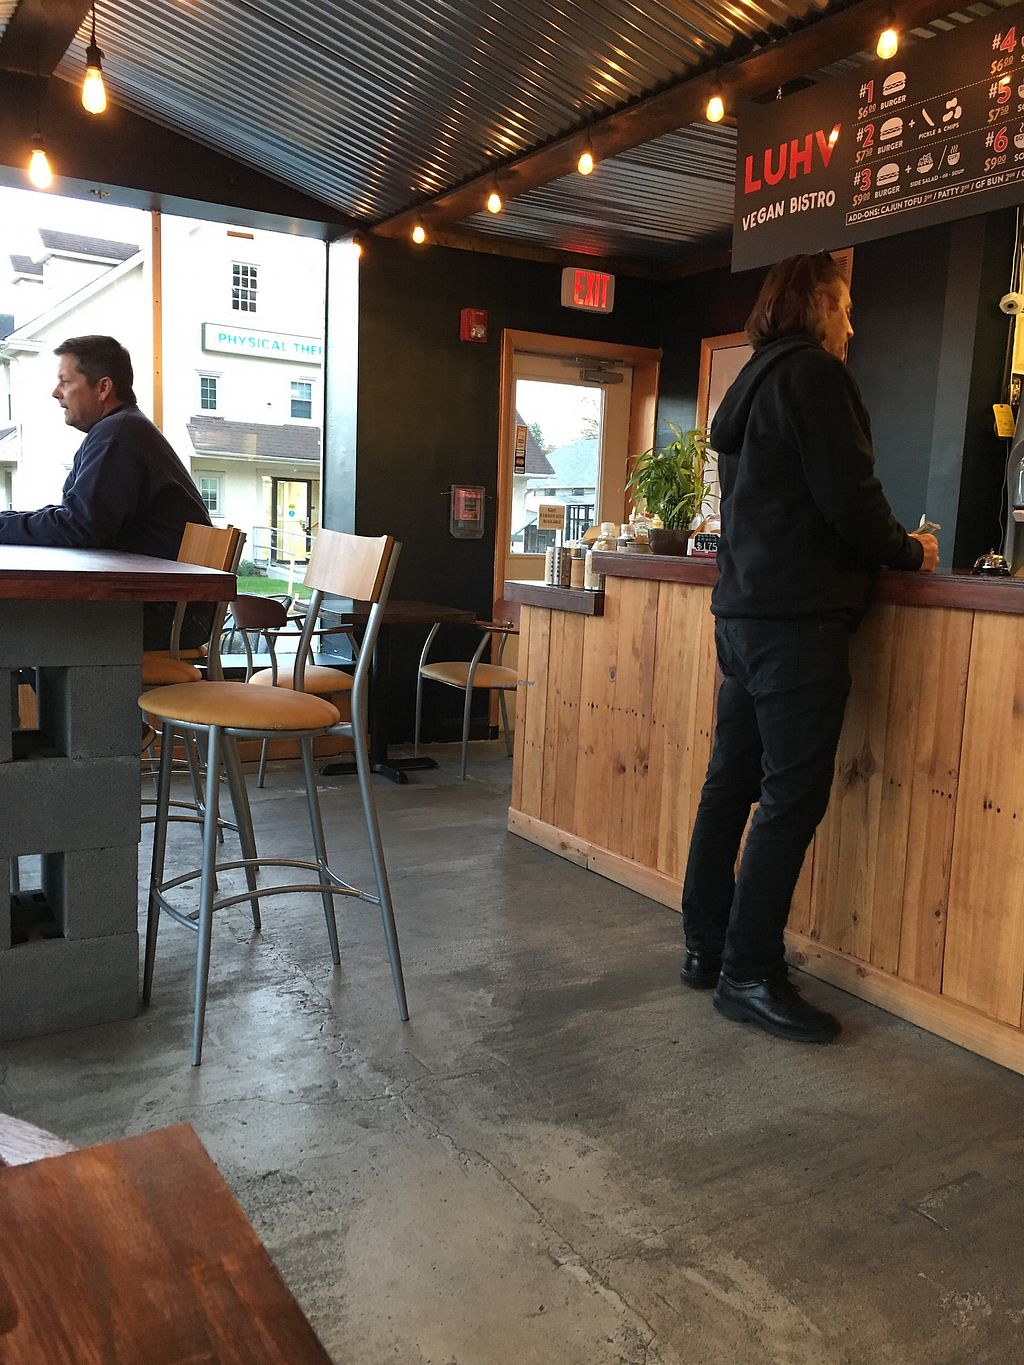 "Photo of LUHV Vegan Bistro  by <a href=""/members/profile/ralphsnowman"">ralphsnowman</a> <br/>main area <br/> September 30, 2017  - <a href='/contact/abuse/image/82111/310315'>Report</a>"